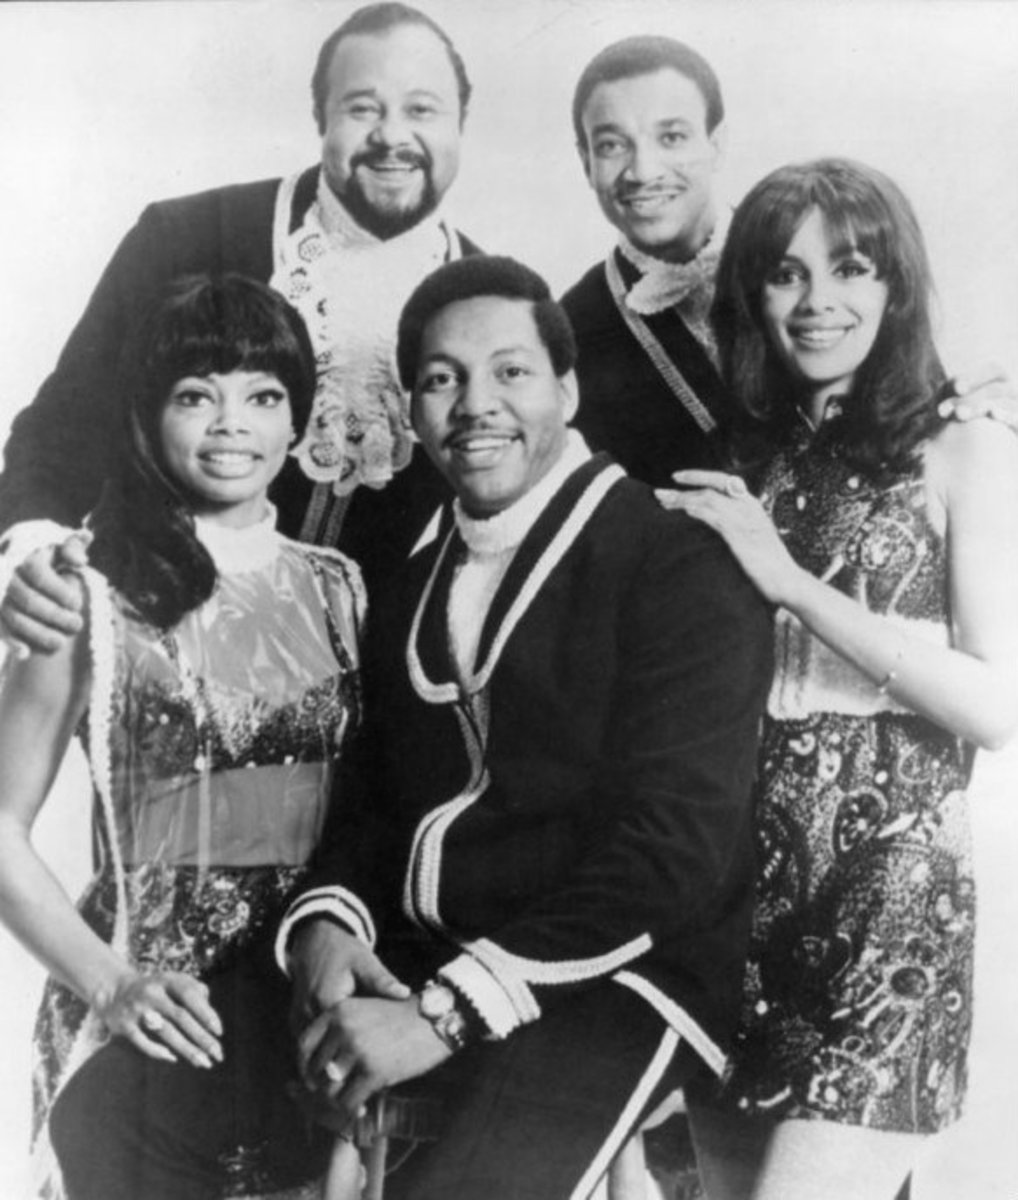 The Fifth Dimension in 1969.